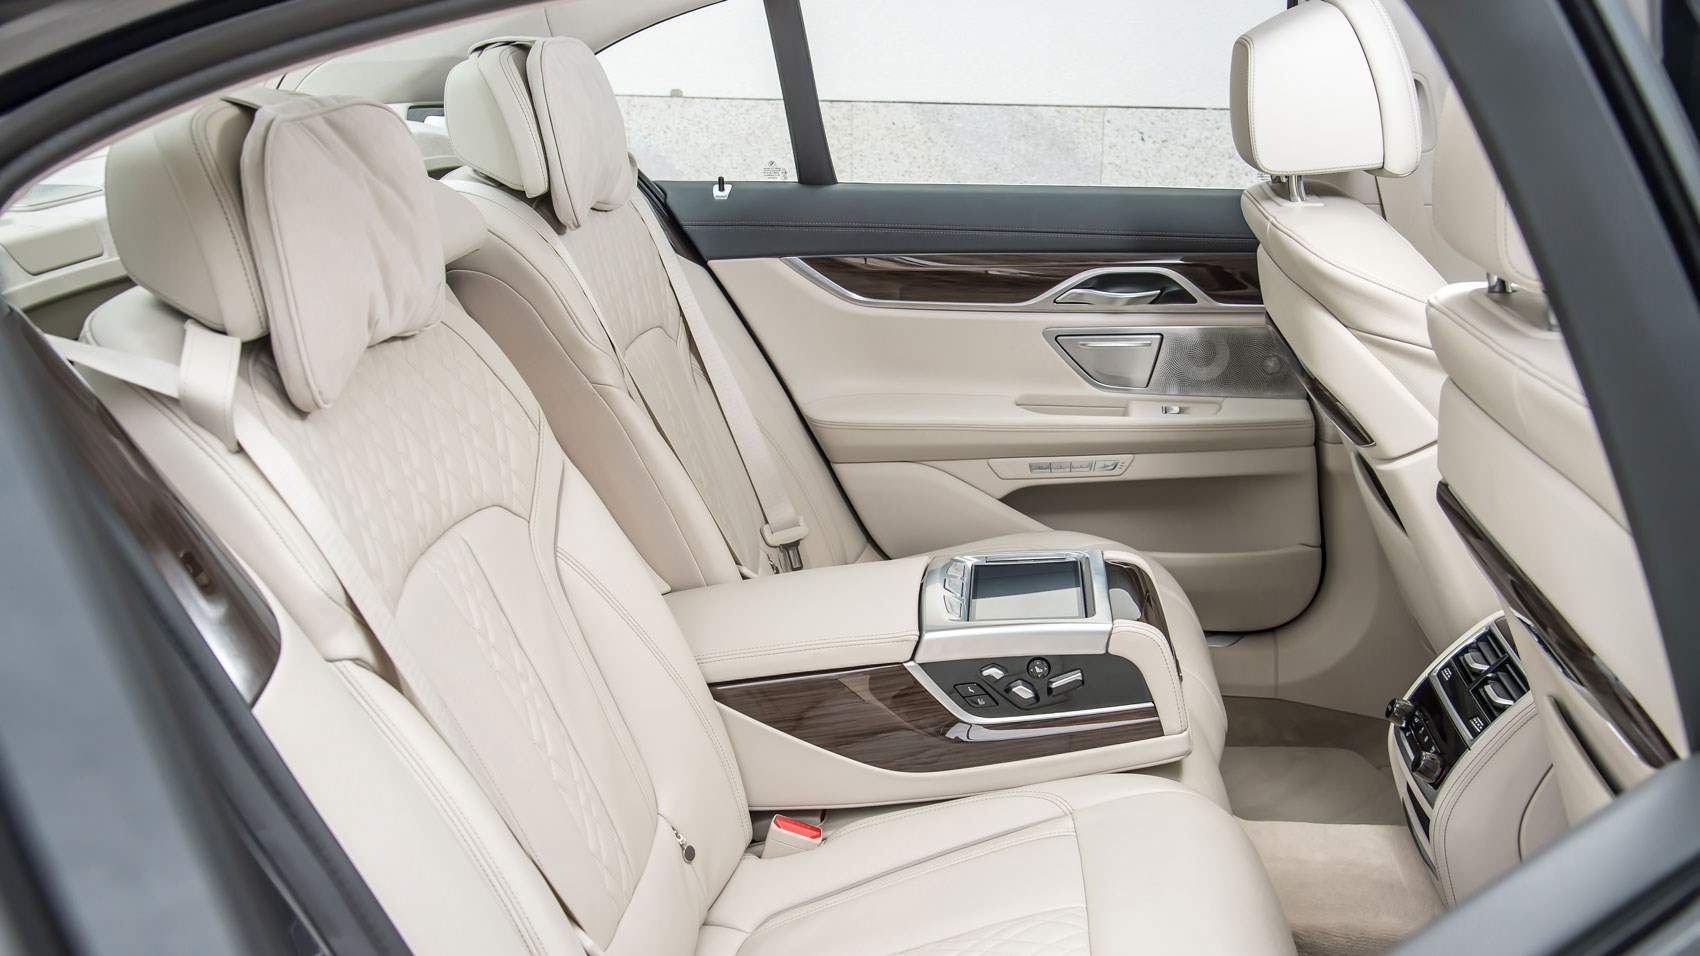 Standard Wheelbase 7 Series Has Roomy Rear Compartment Better To Drive Than L